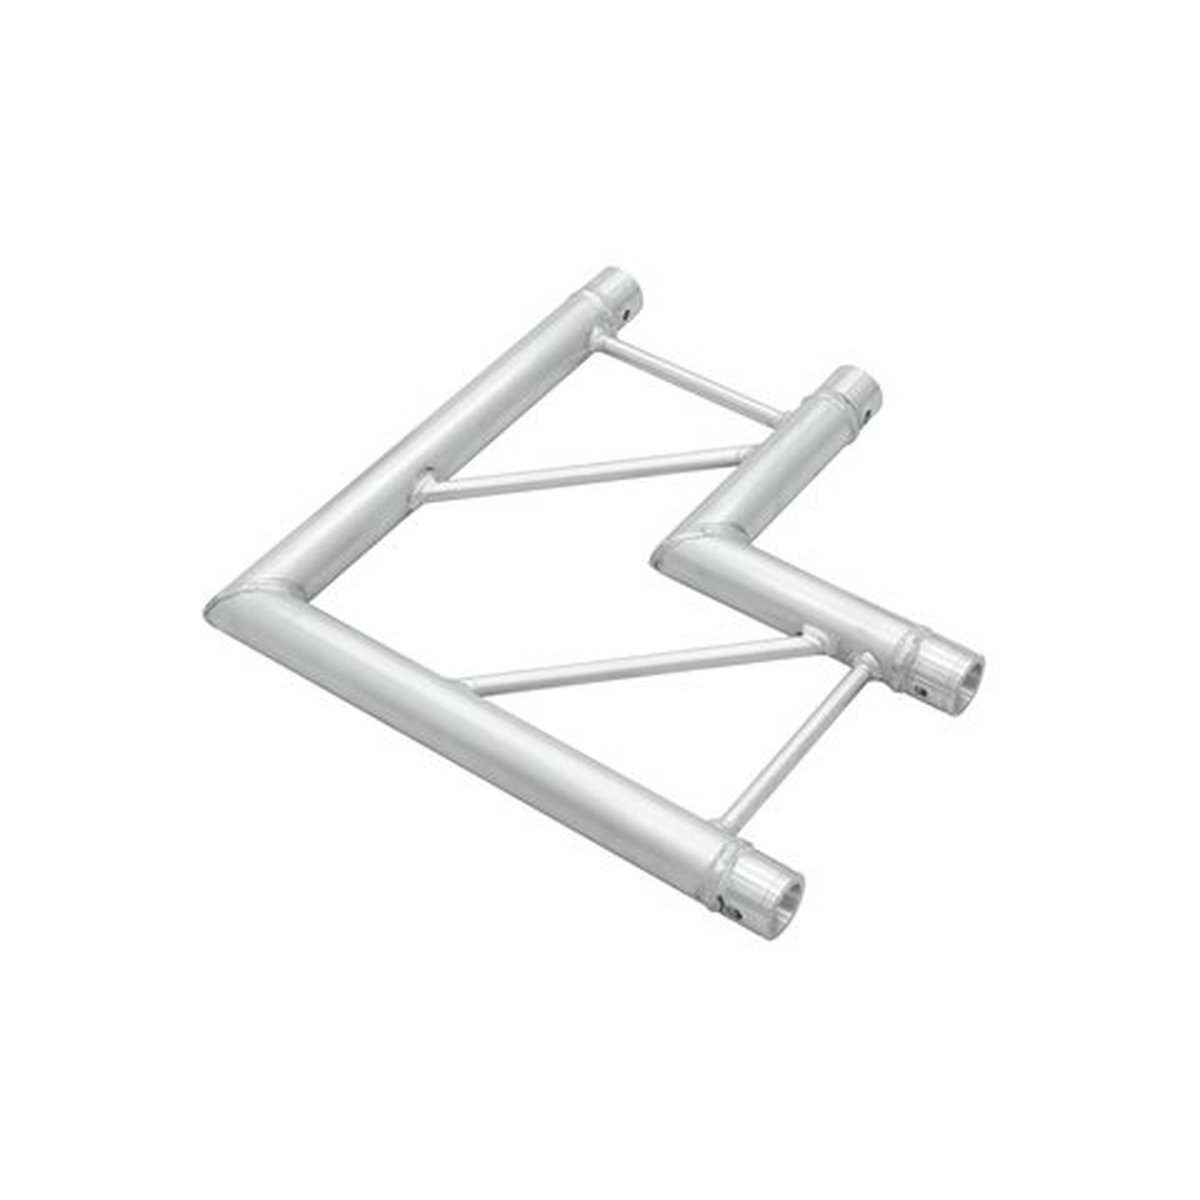 Alutruss Bilock E-GL22 C21-H 2-way Corner 90°